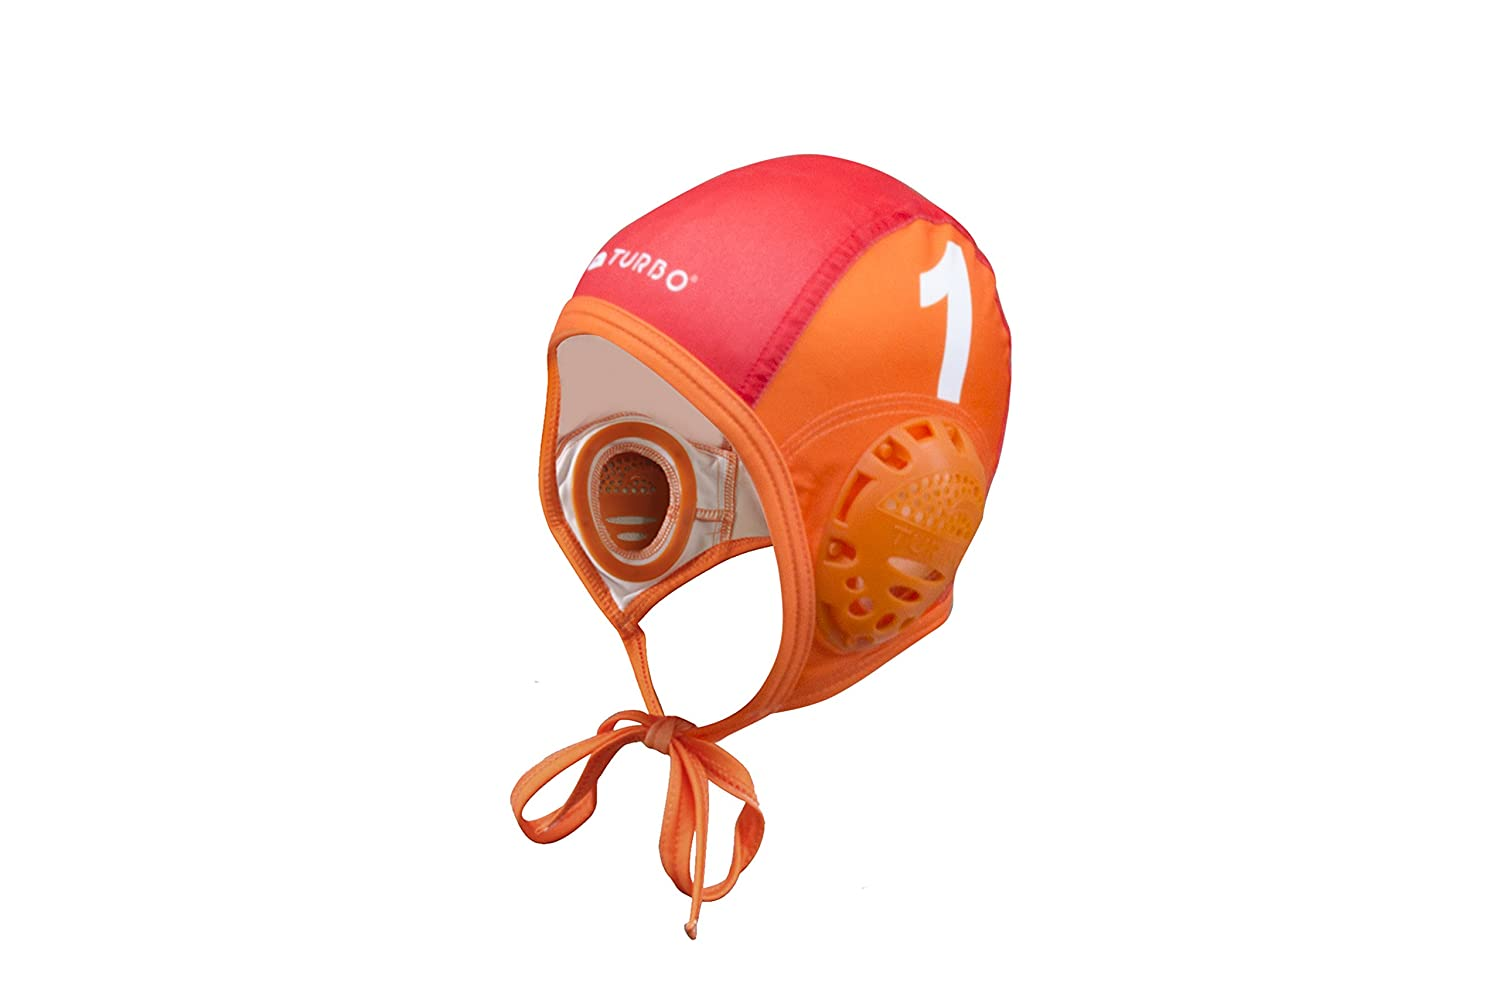 Amazon.com : TURBO Standard Water Polo Cap Set with 3 Numbers (Orange) : Sports & Outdoors